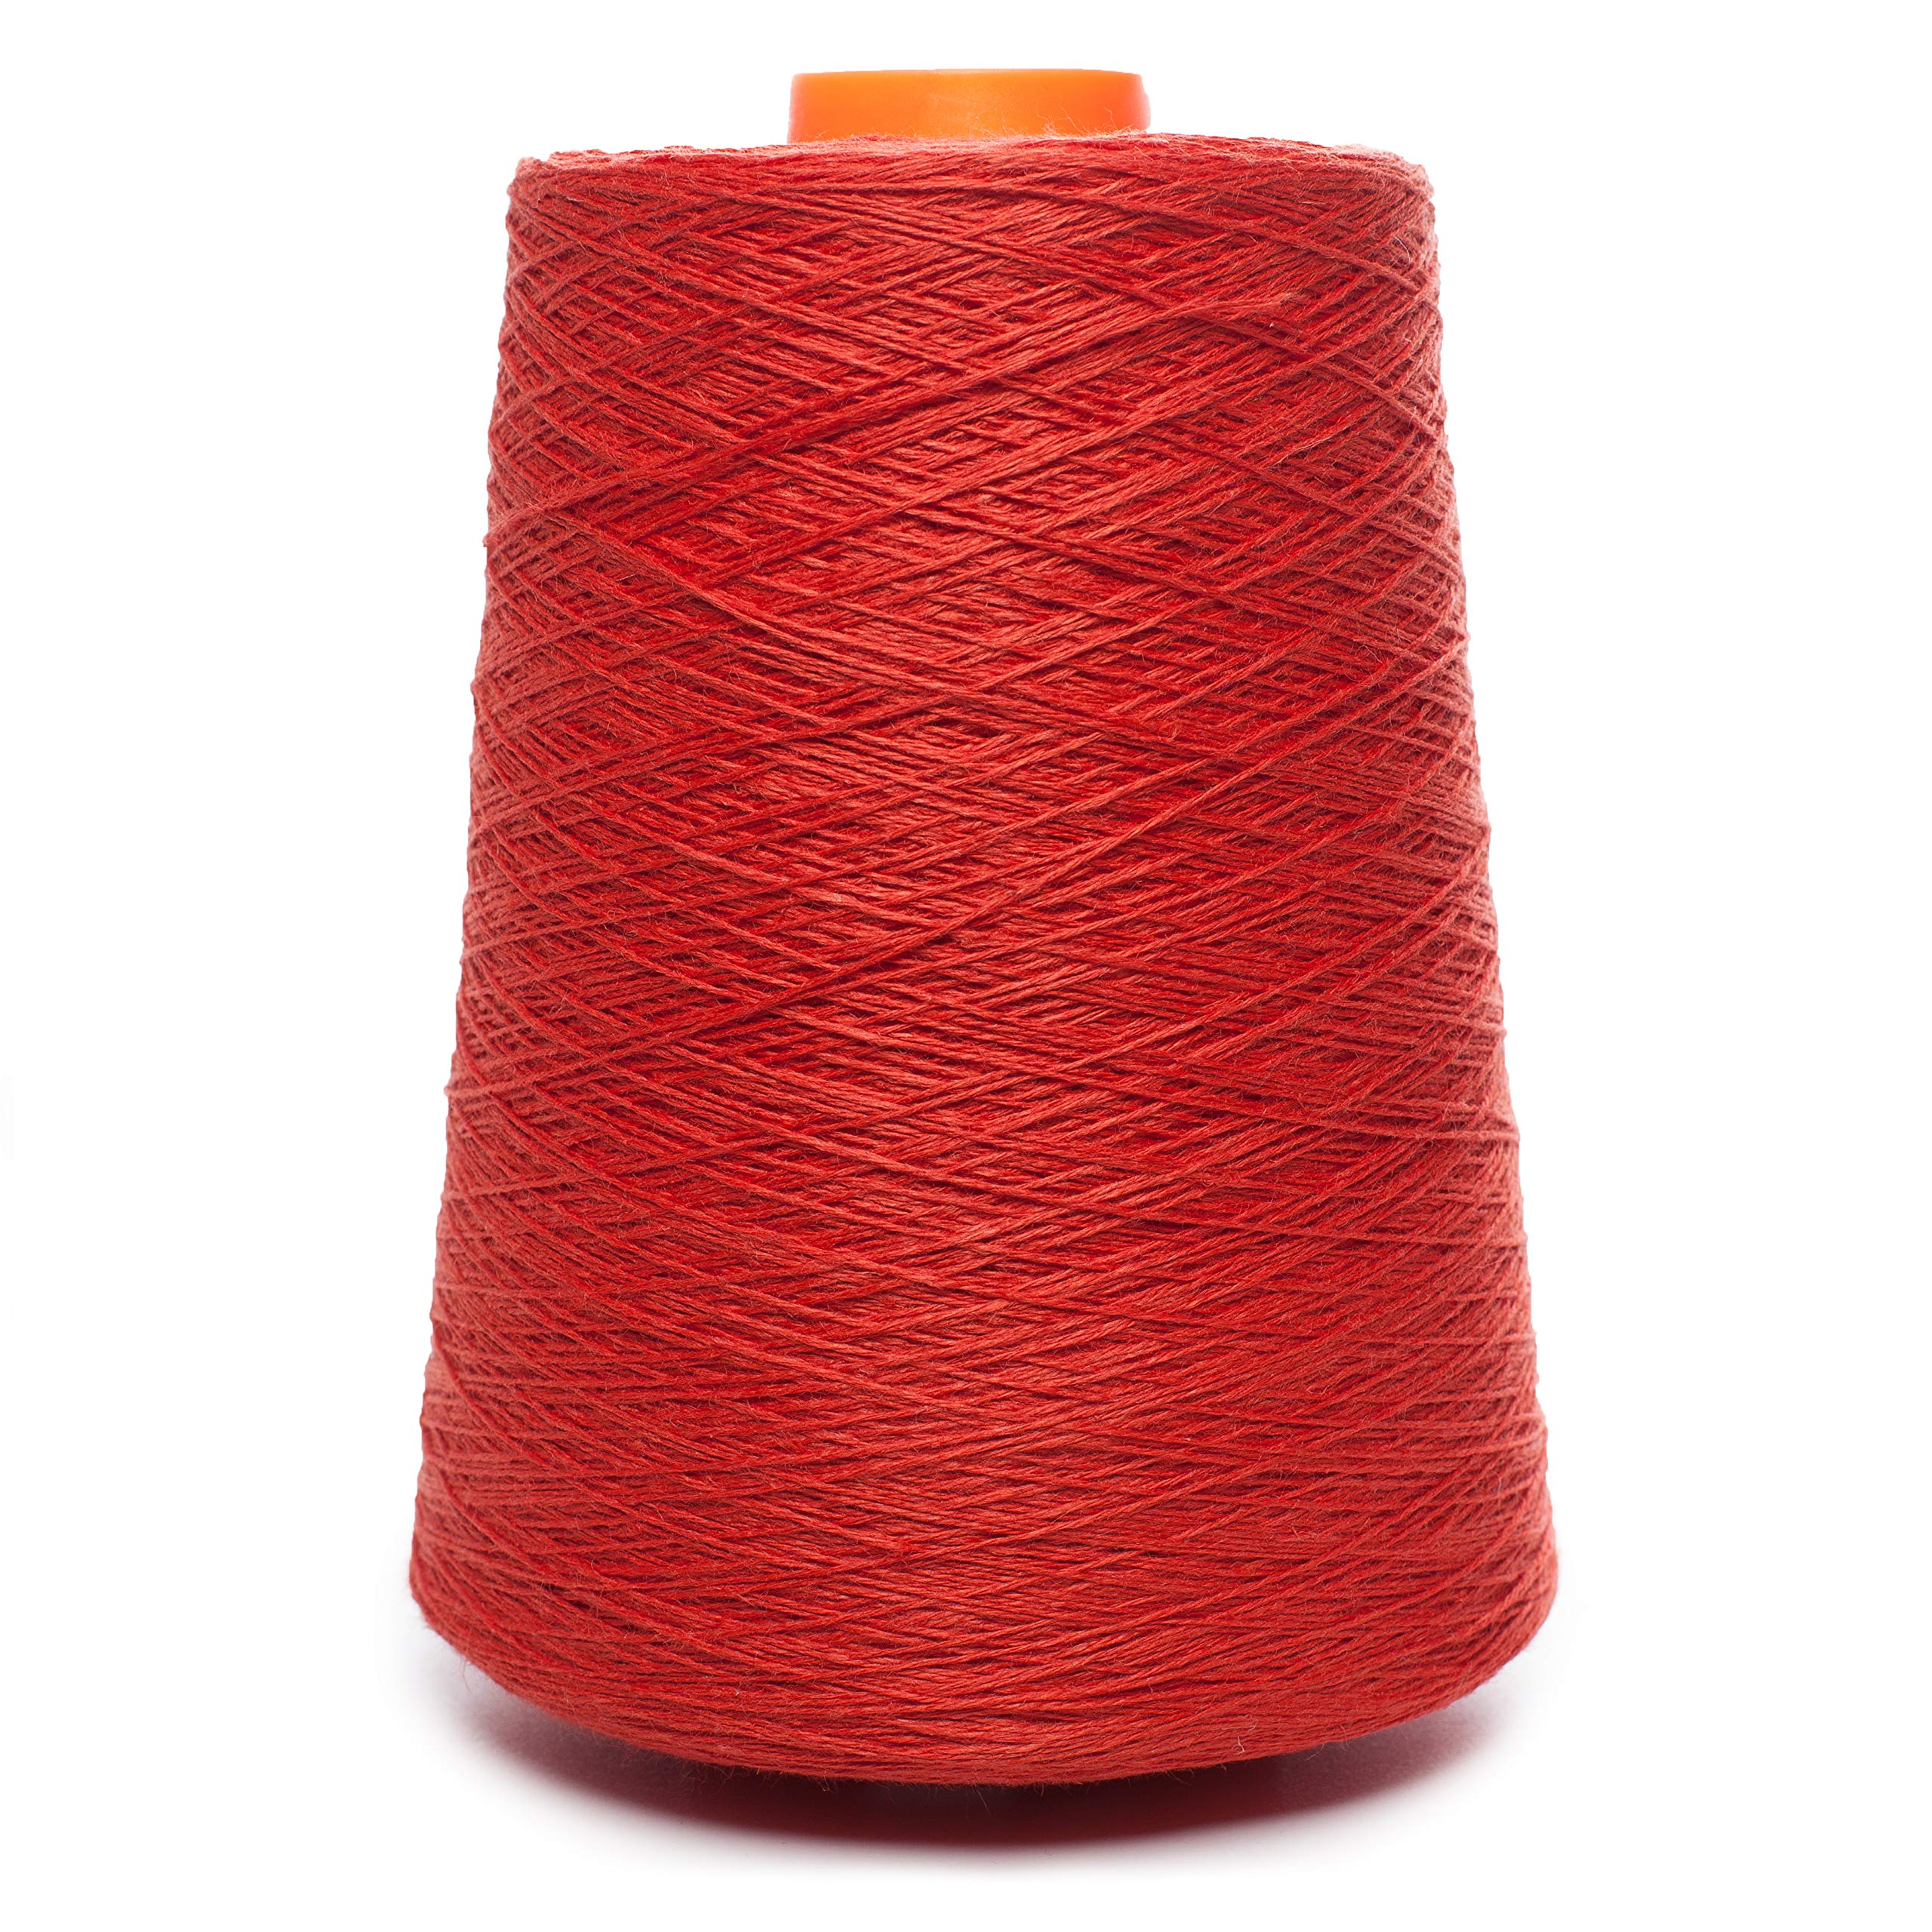 Linen Yarn Cone - 100% Flax Linen - 1 LBS - Flame Red - 3 PLY - Sewing Weaving Crochet Embroidering - Euroflax Linen Yarn - 3.000 Yards